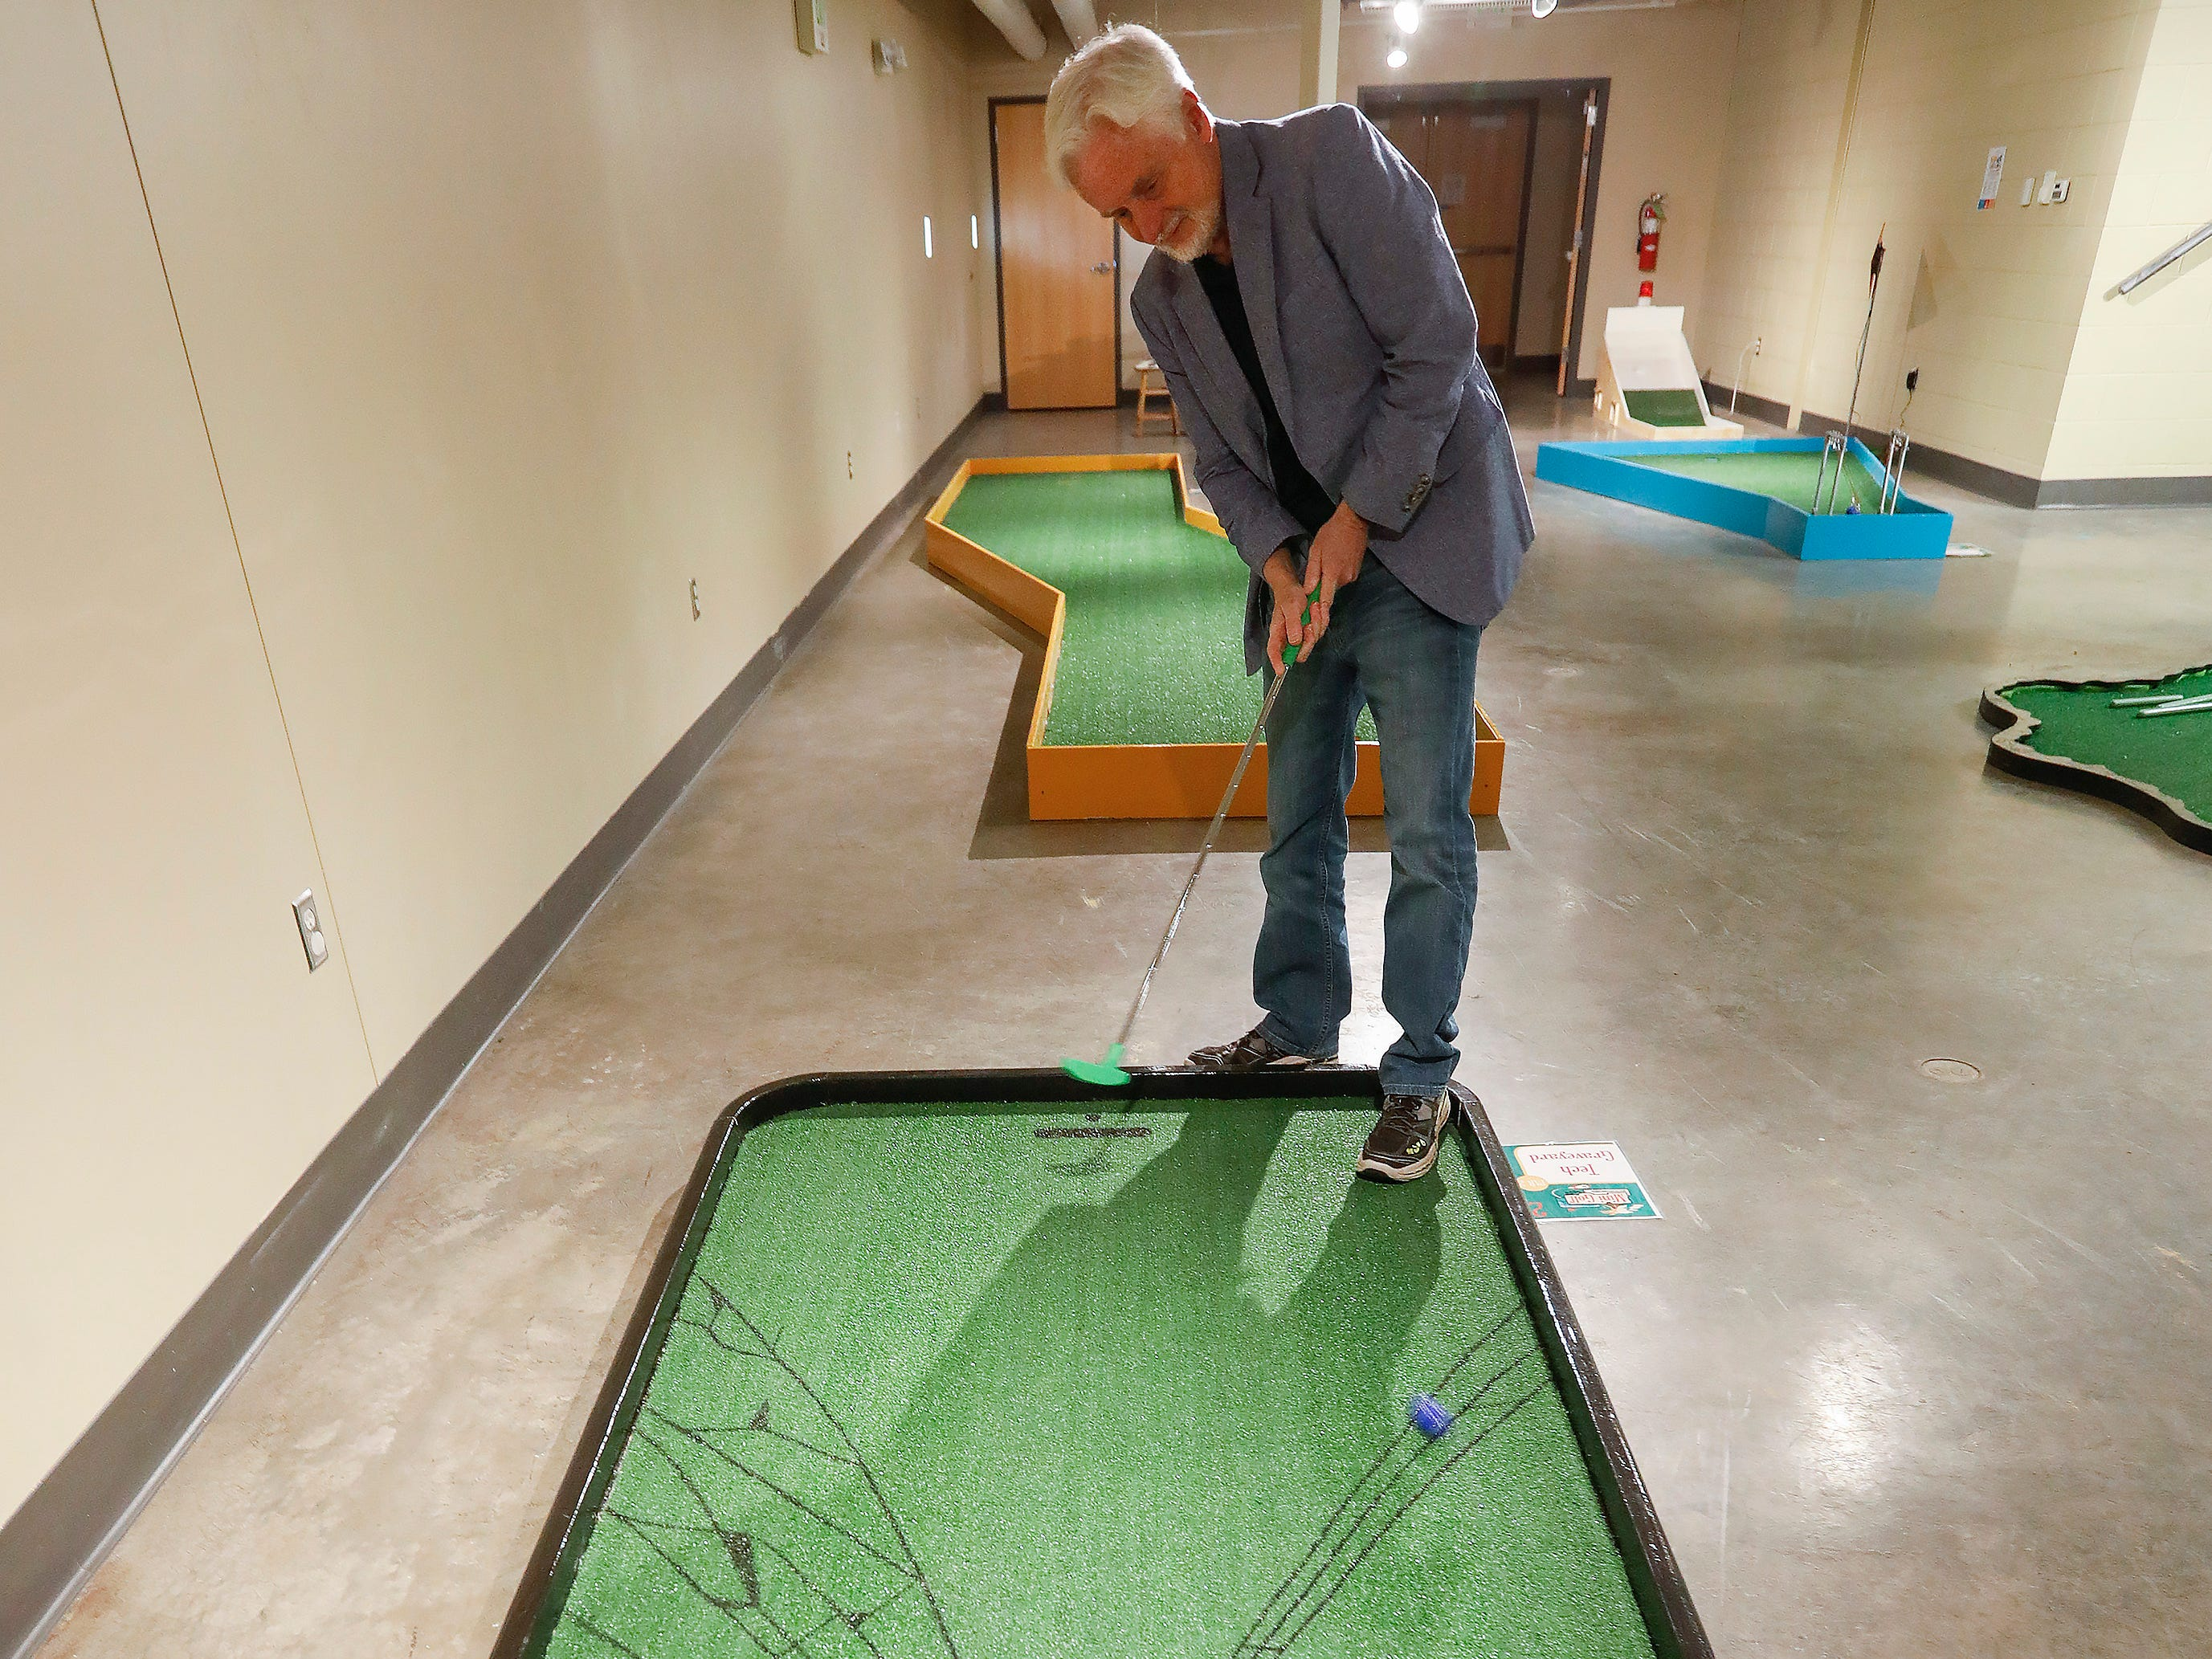 Steve Pokin takes a shot on the second hole of the new 9-hole indoor miniature golf course at the science museum. The new exhibit opens to the public on Sunday, March 31, 2019.